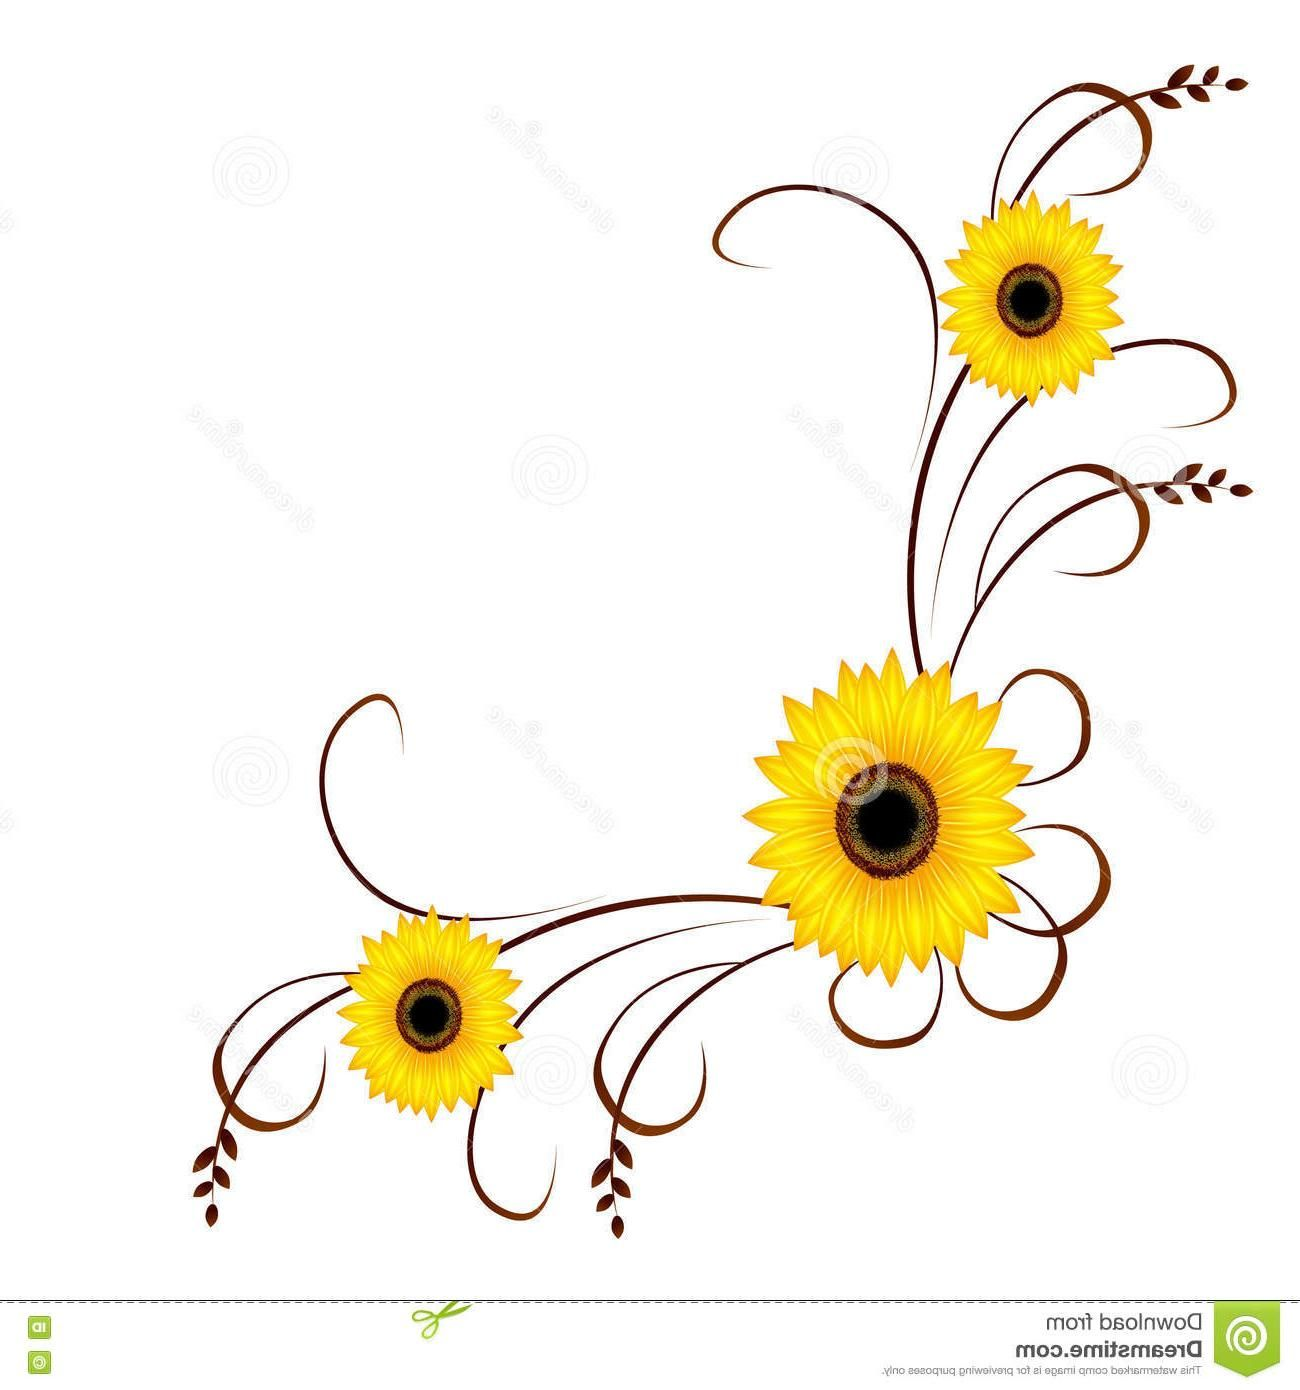 Sunflowers Clipart Black And White Sunflowers Clip Art